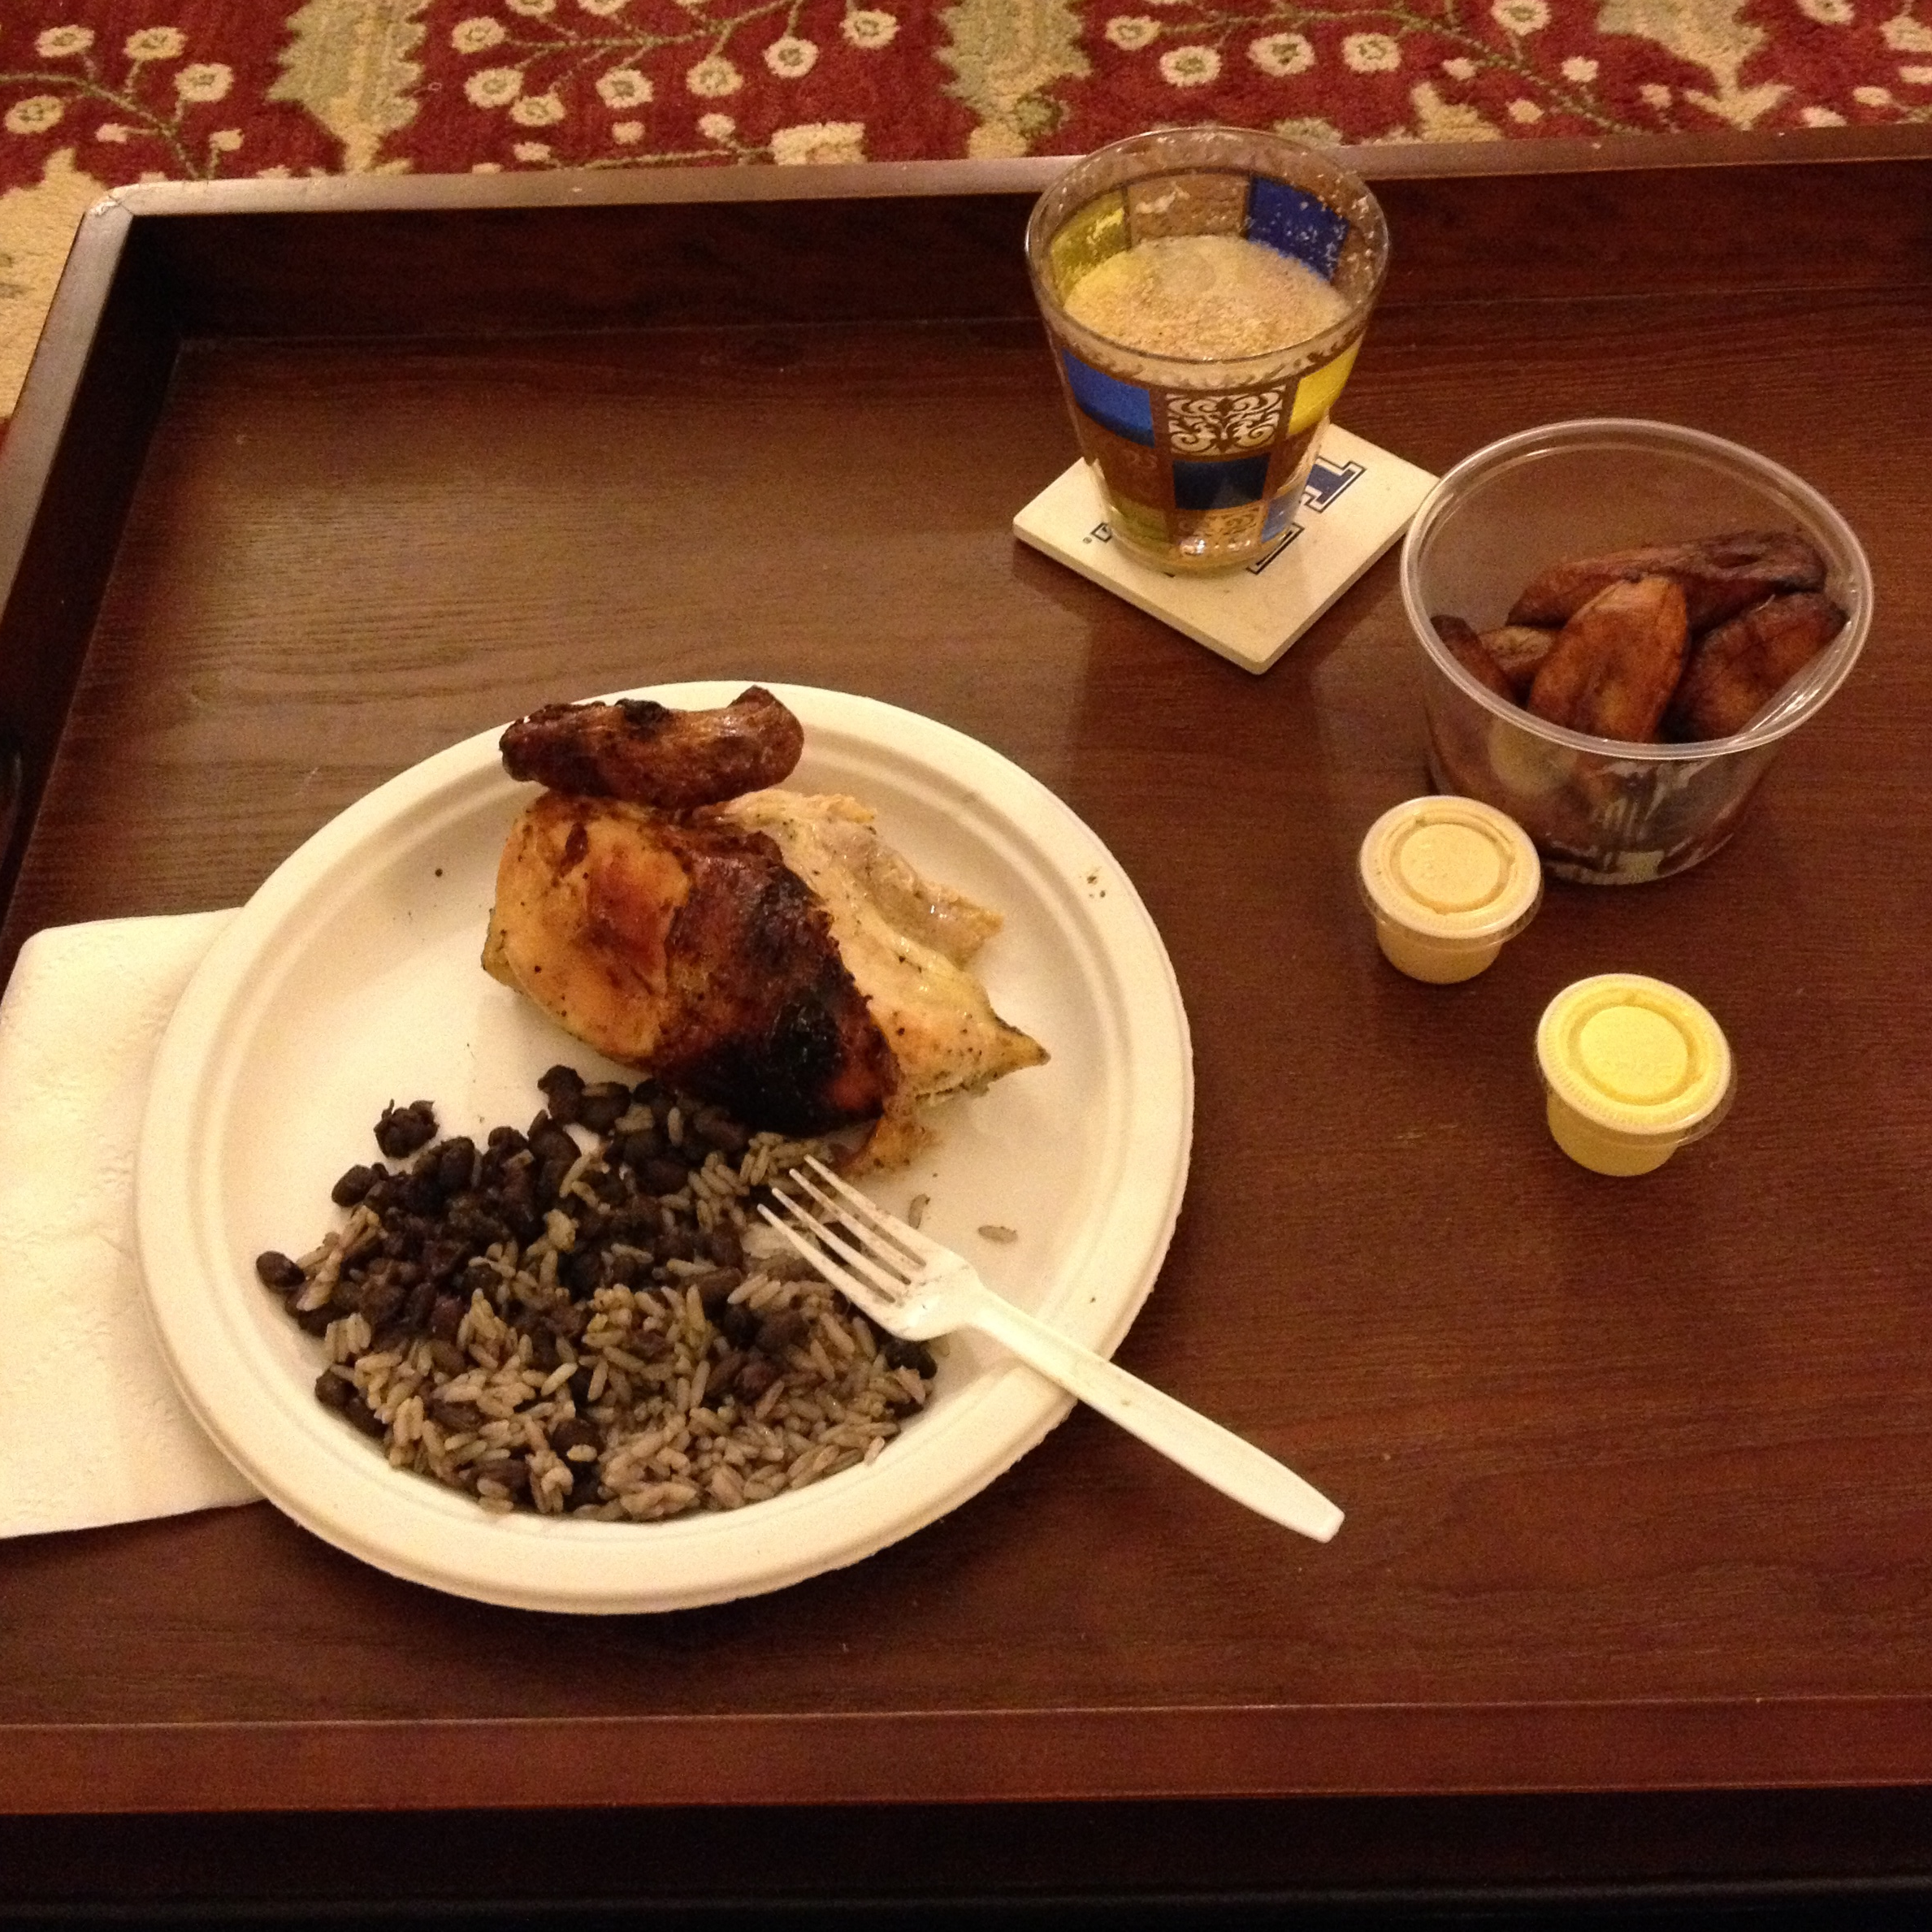 A painkiller enlivens an elegant meal of take-out Peruvian chicken with rice, beans, and fried plantains.